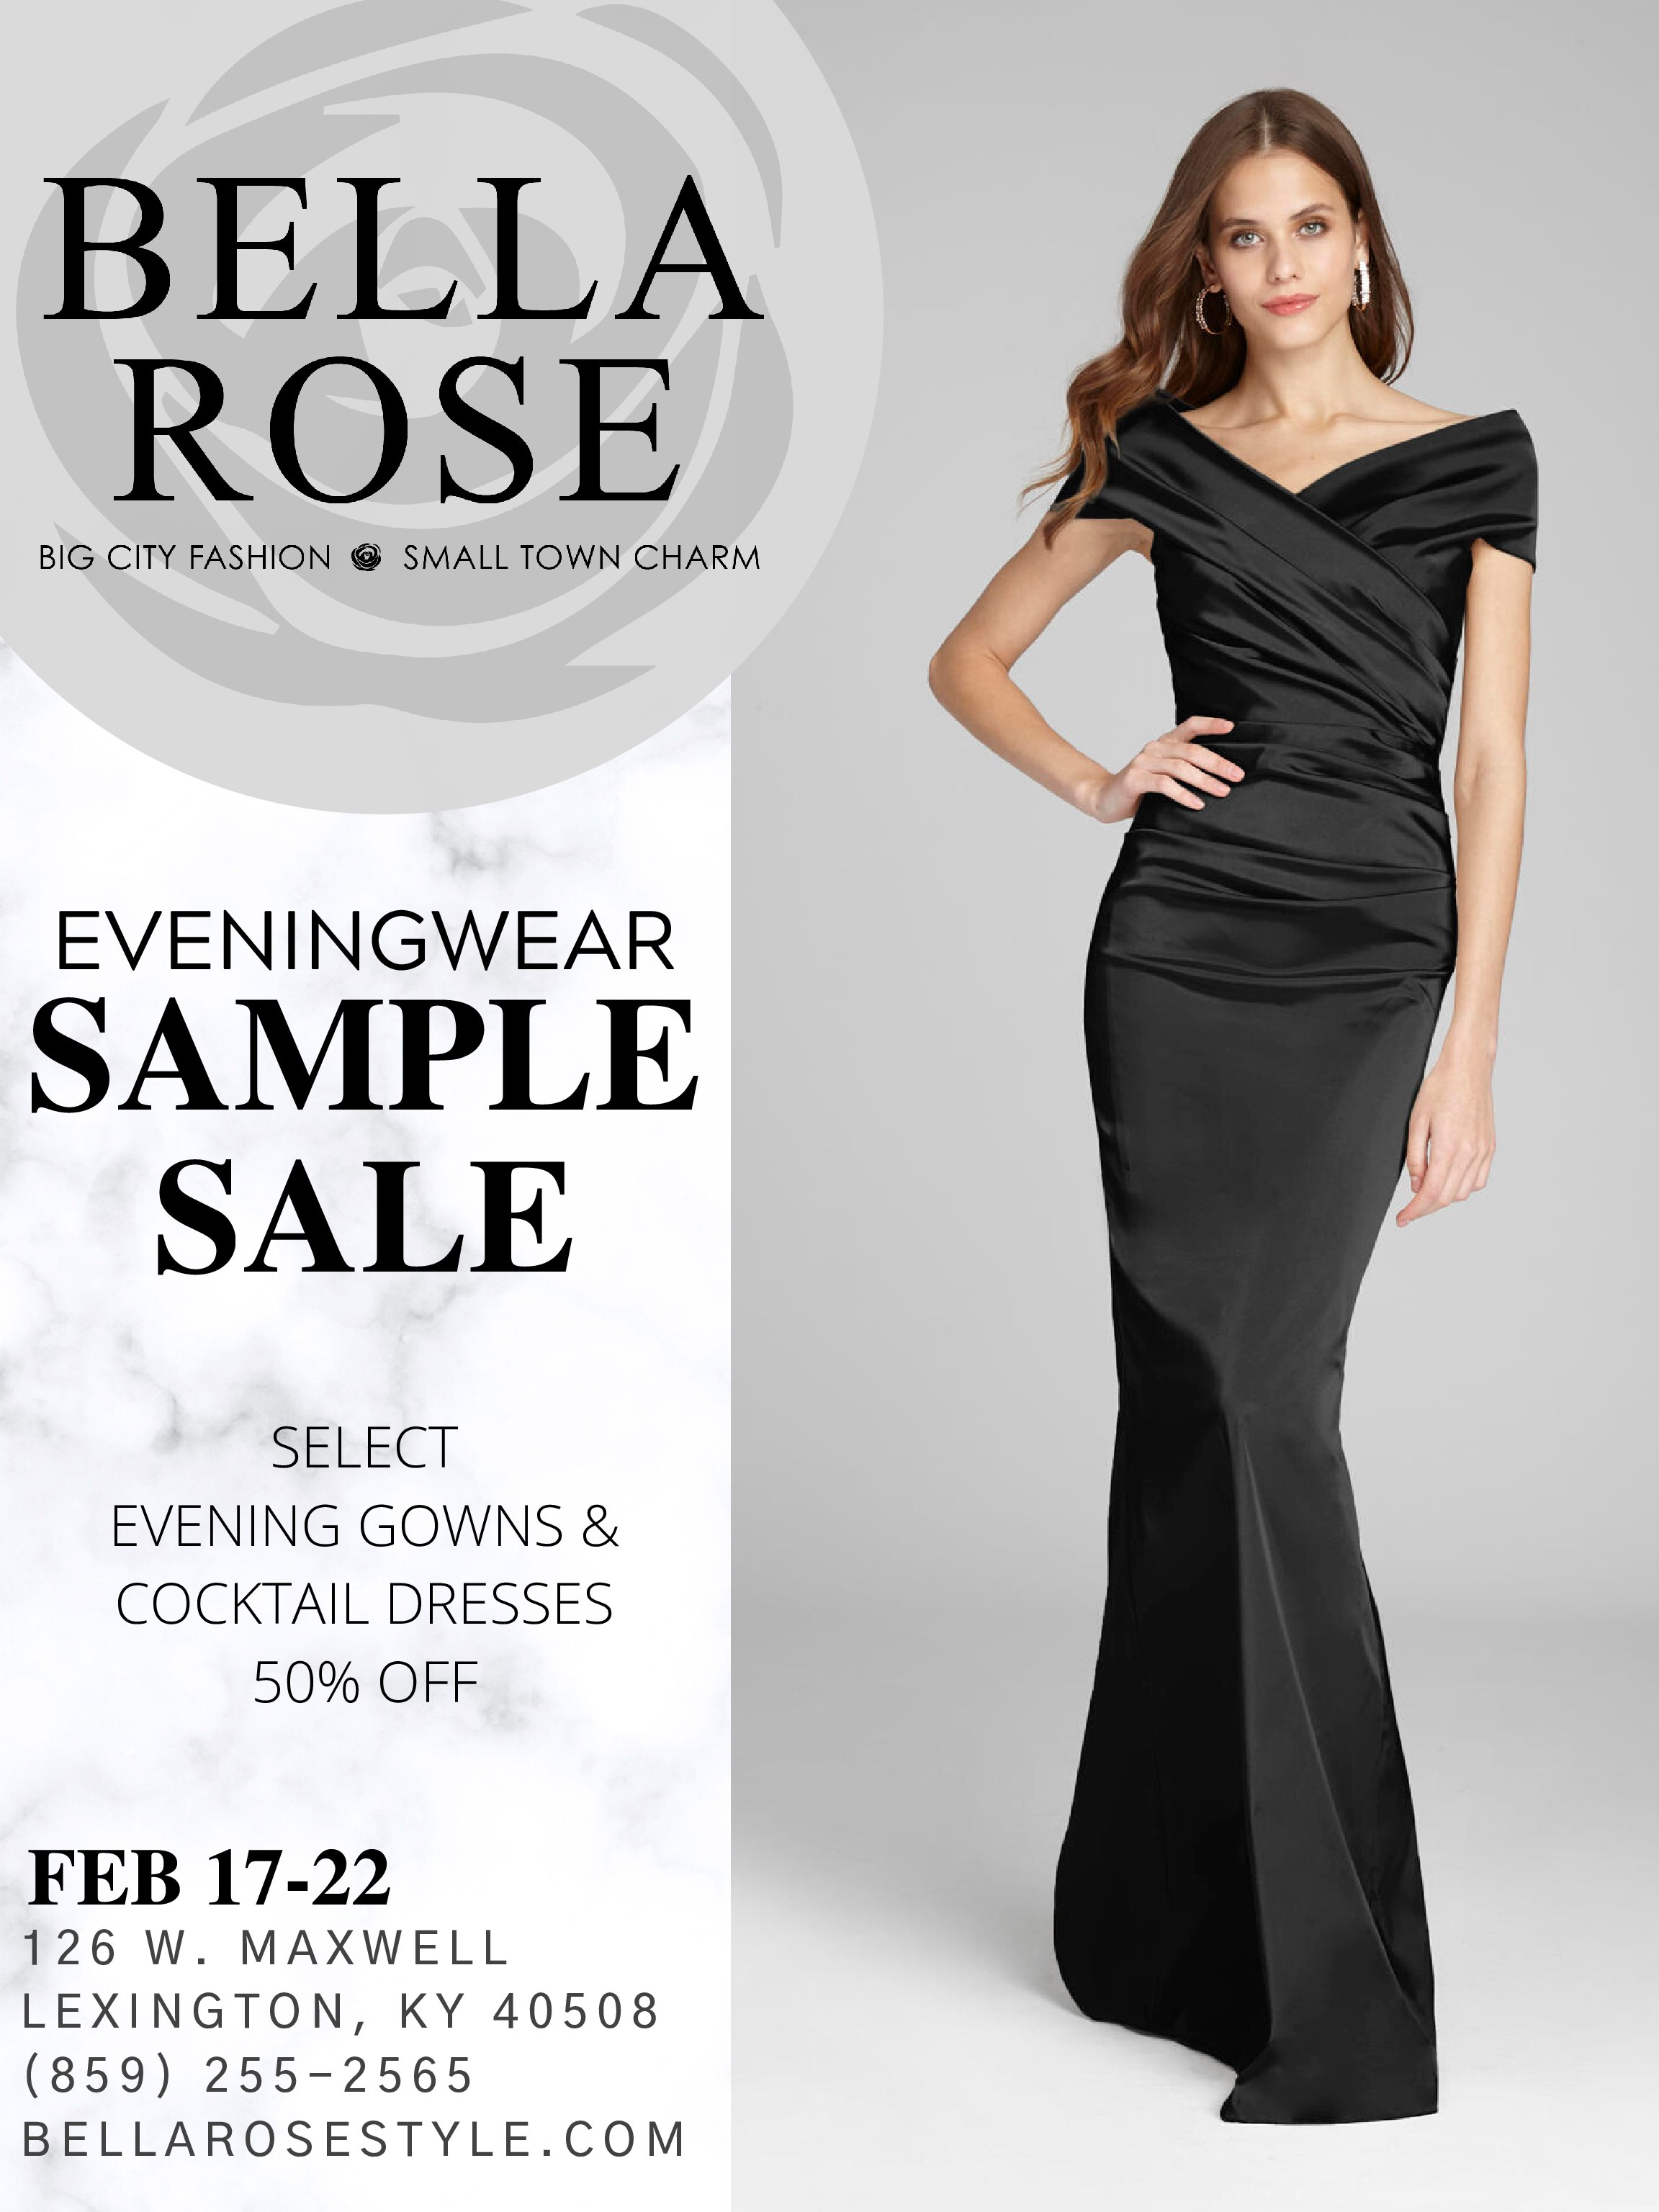 Bella Rose Eveningwear Sample Sale